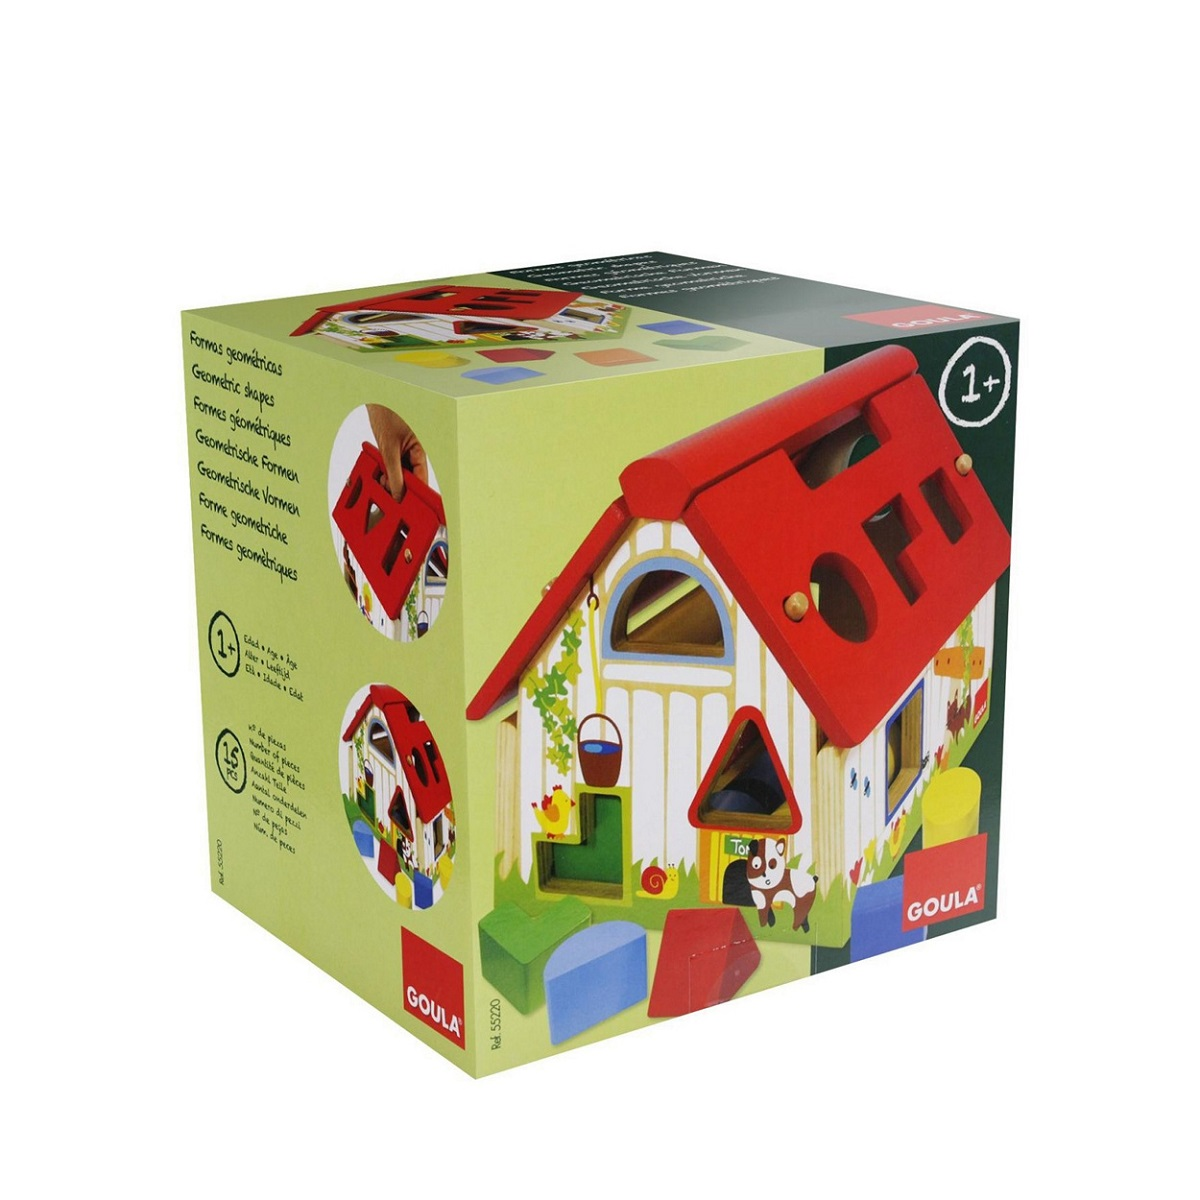 Goula Wooden Farmhouse Shape Sorter